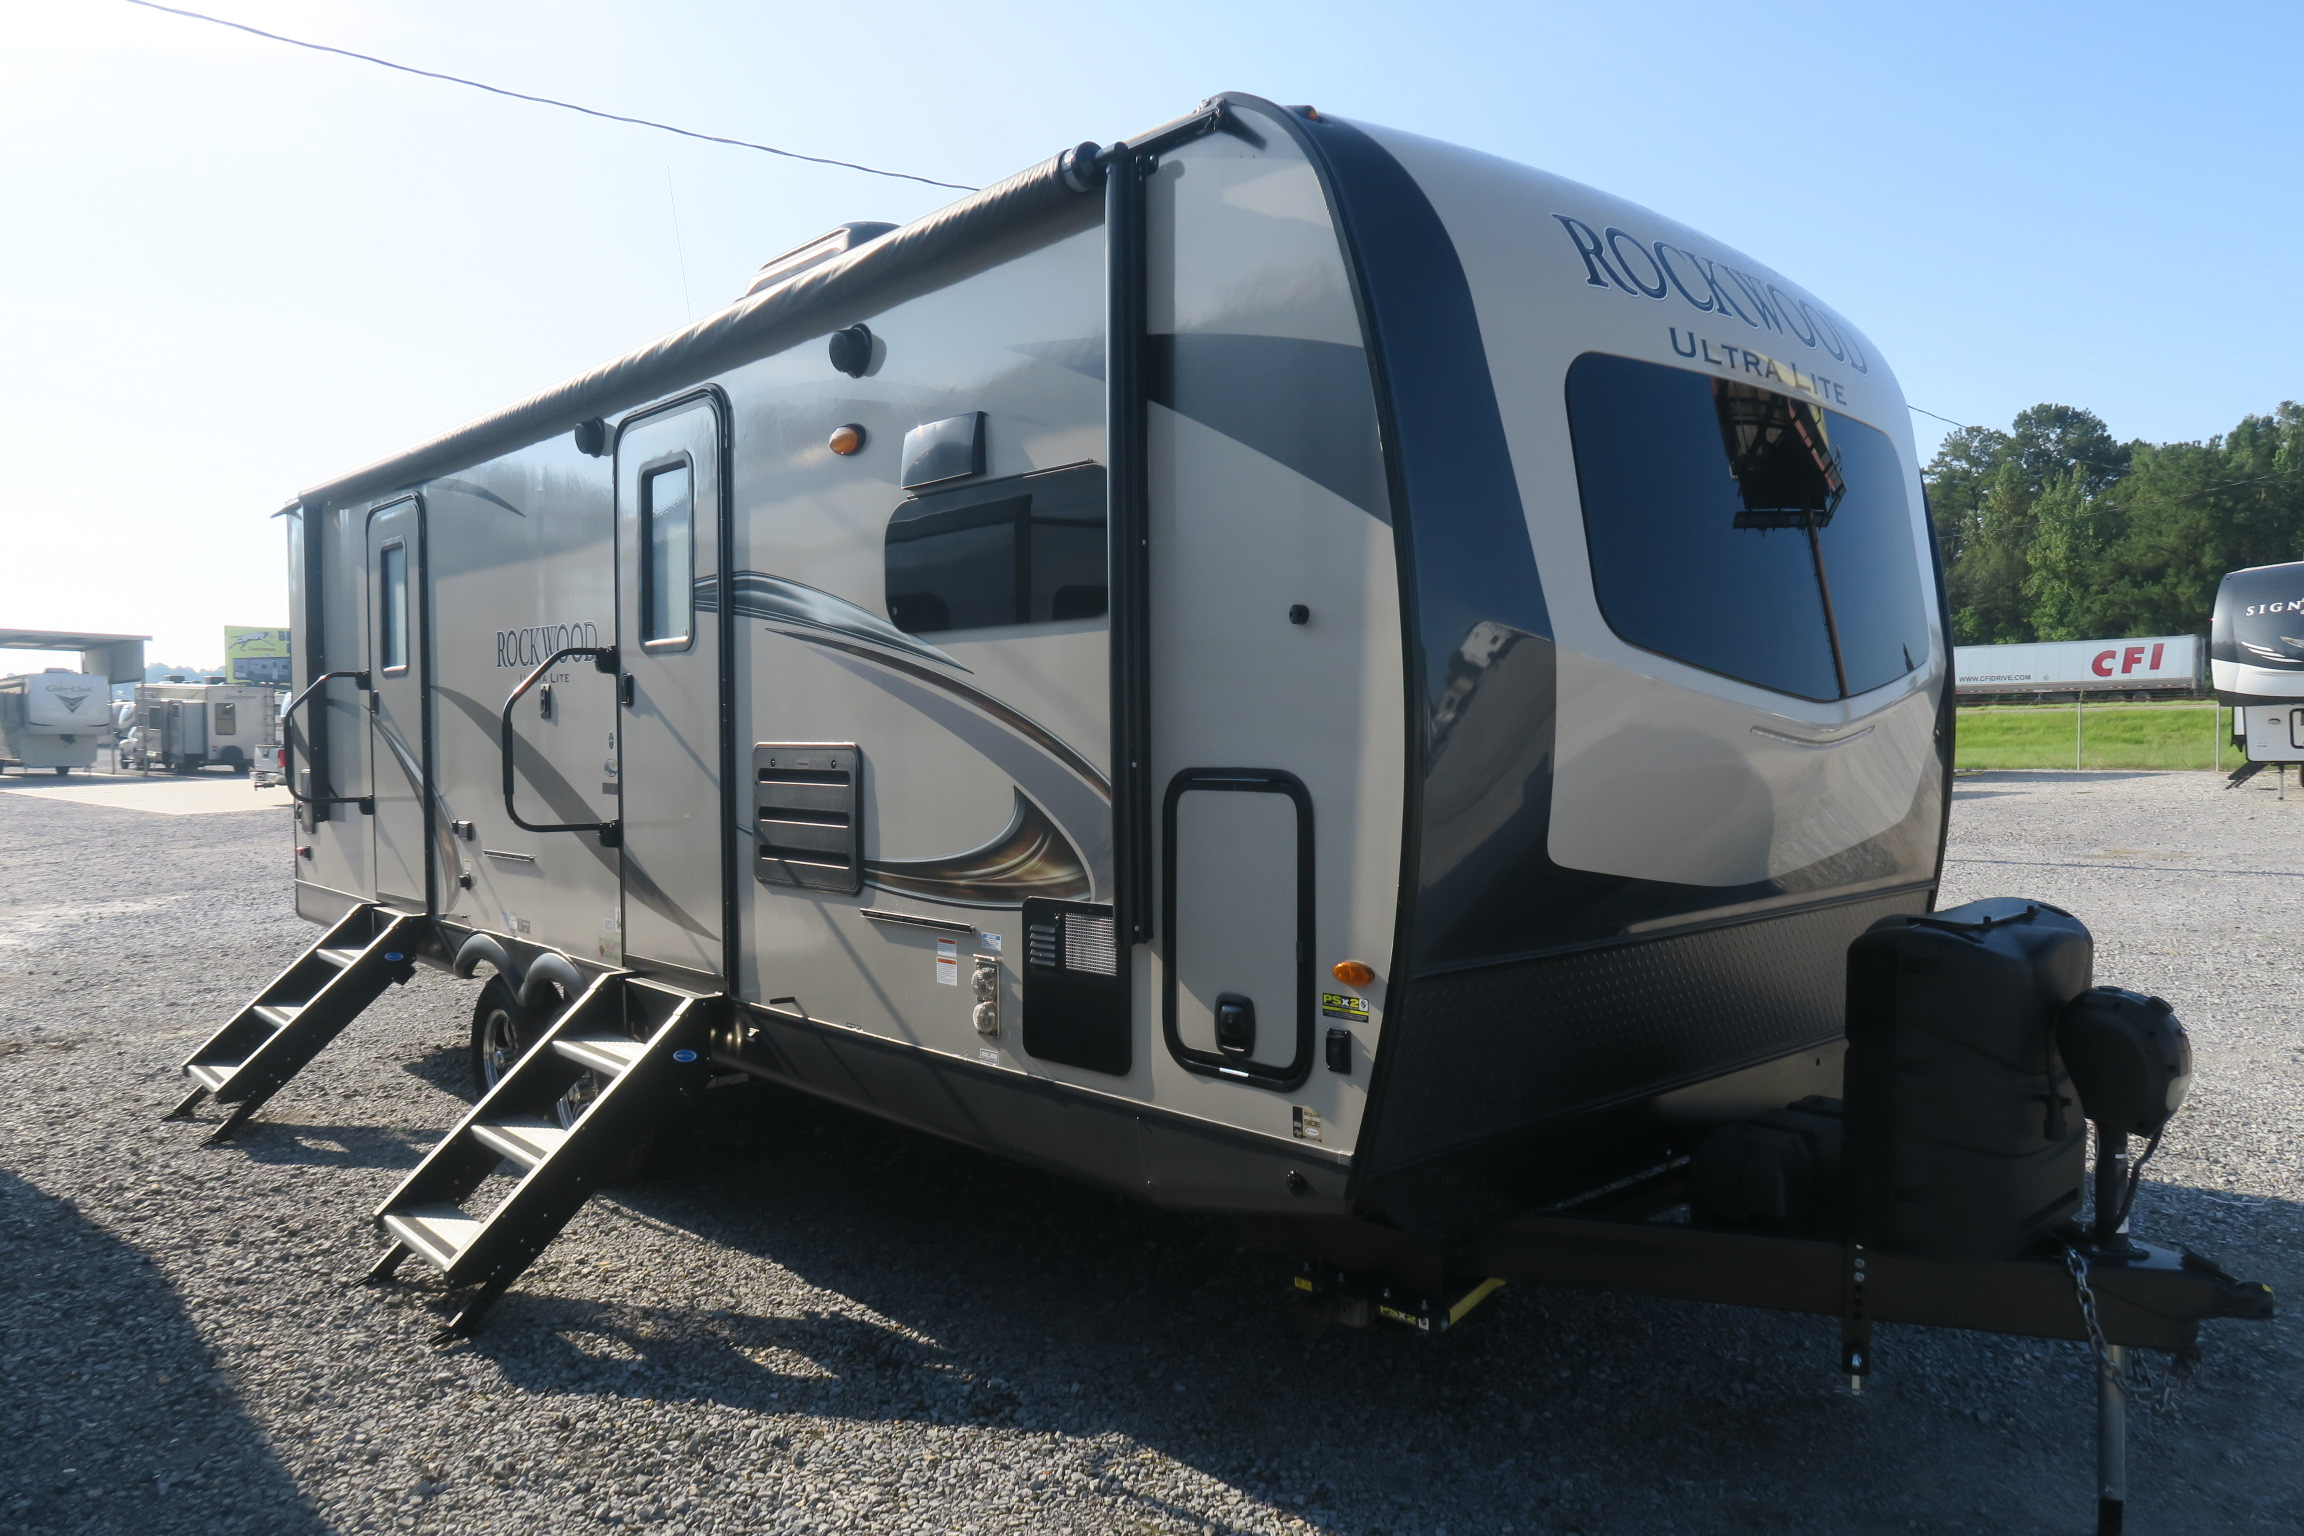 USED 2020 ROCKWOOD ULTRA LITE 2608BS - Overview ...